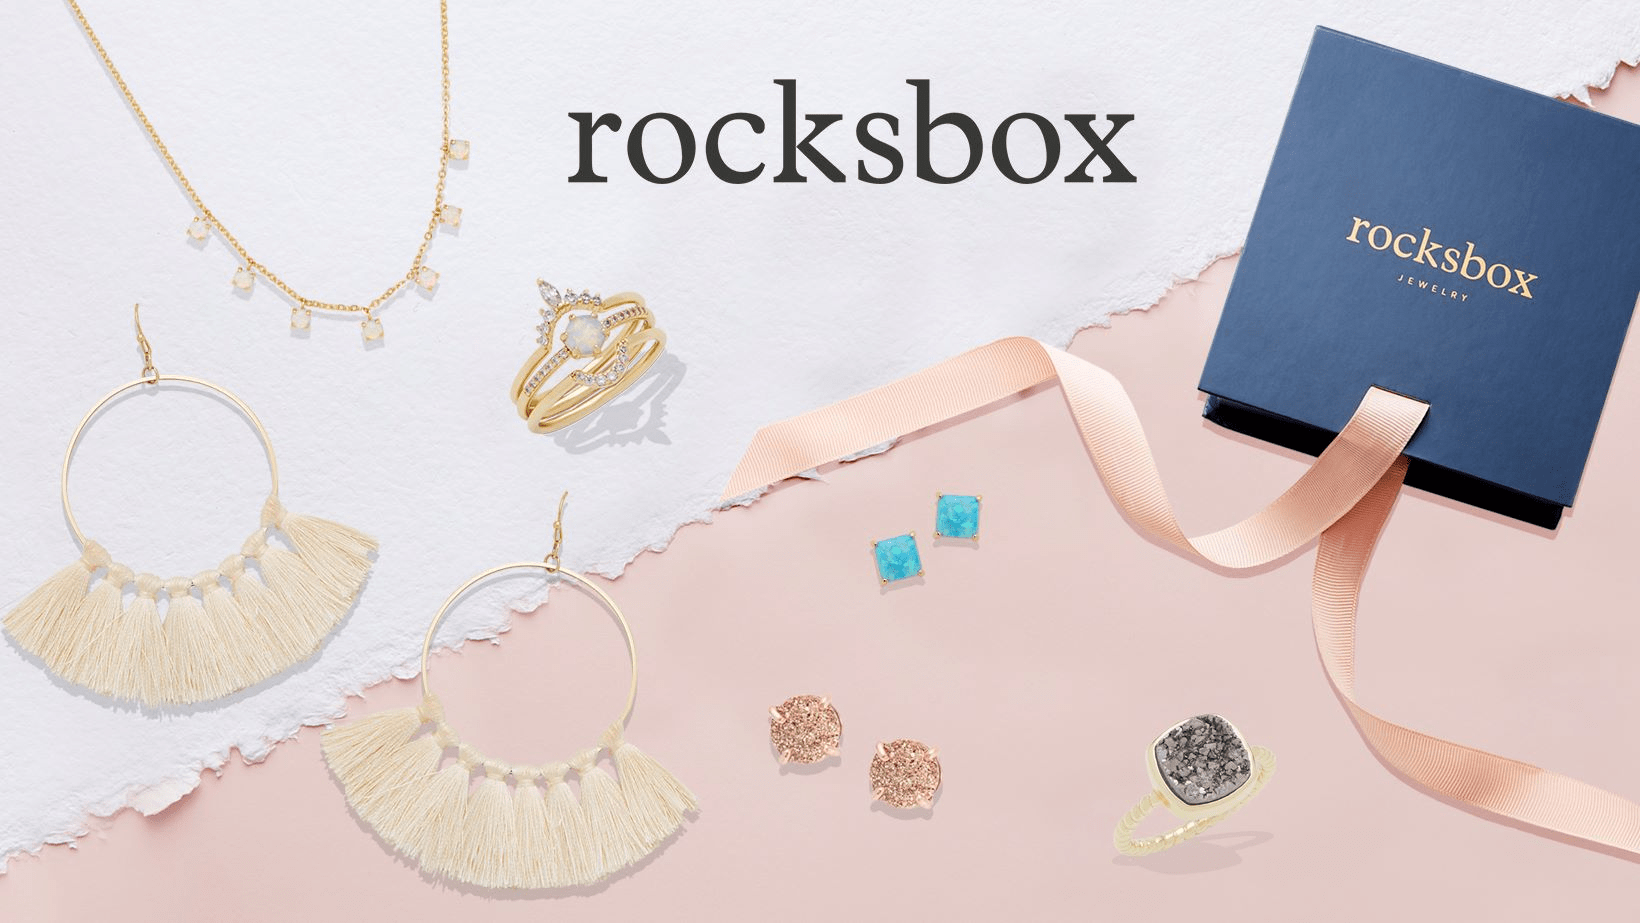 RocksBox Cyber Monday Deal: $10 Off Gifts + Try it FREE!